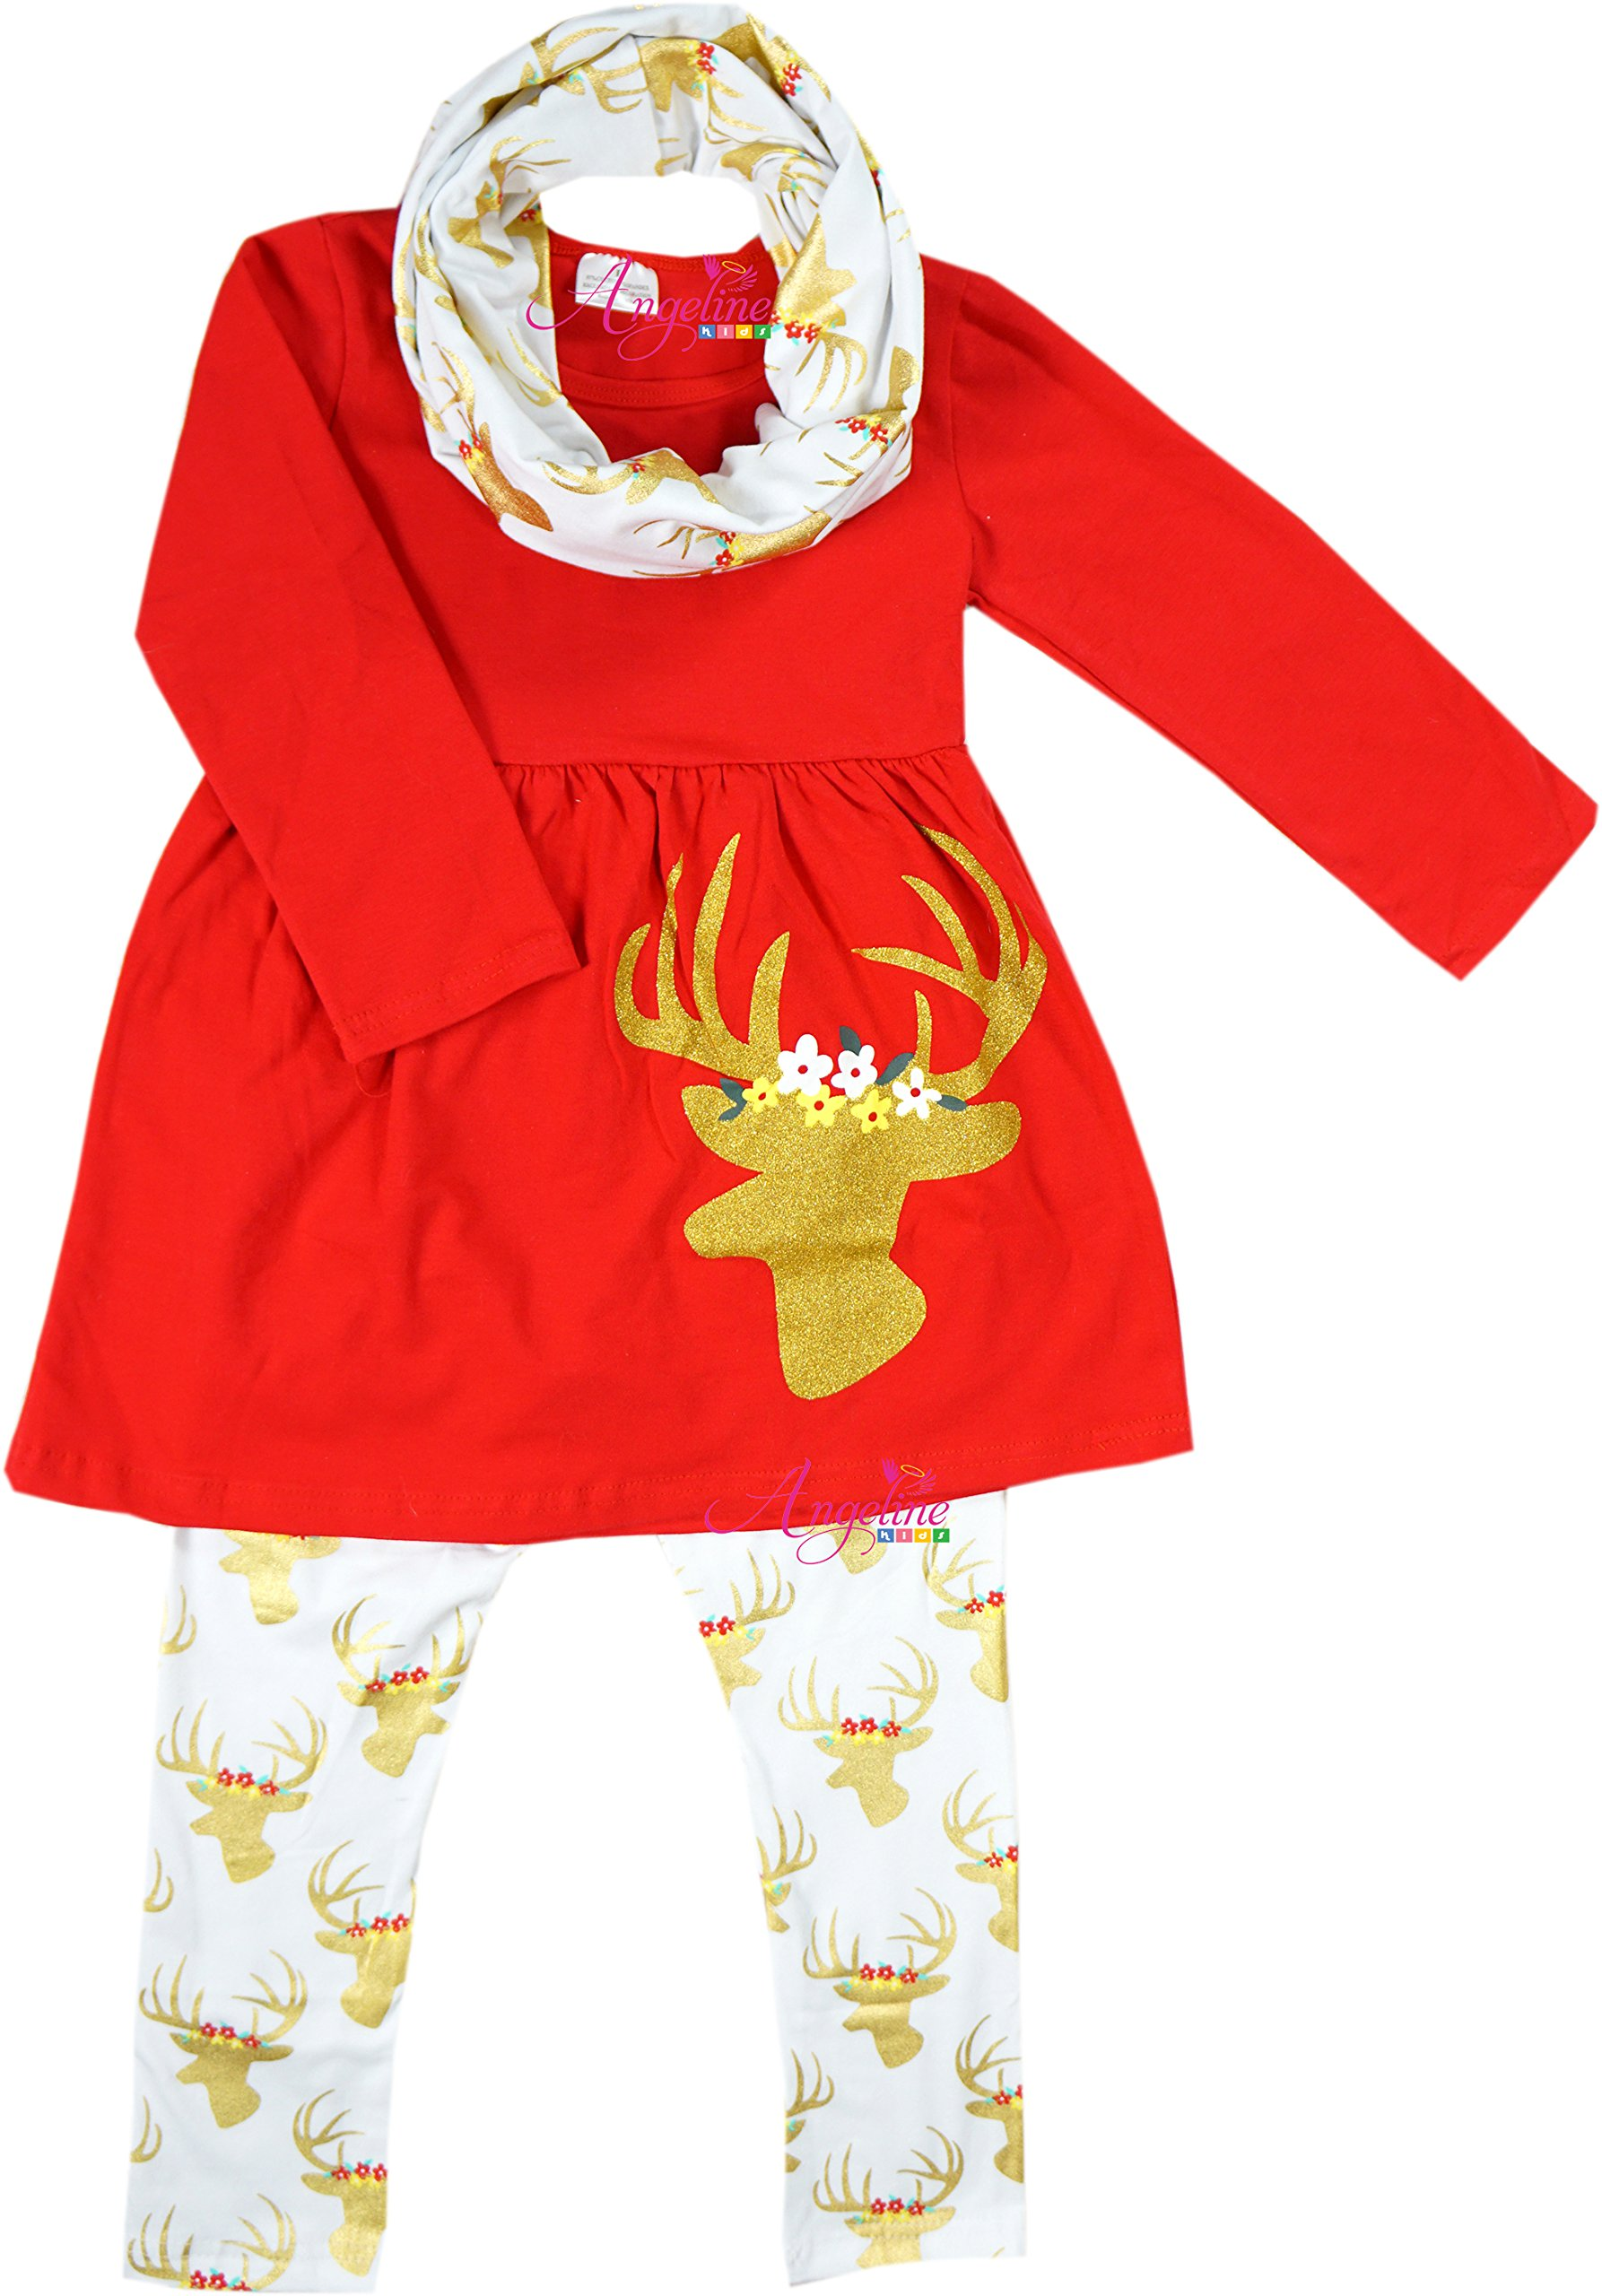 Boutique Clothing Girls Christmas Reindeer Scarf Set Gold 2T by Angeline